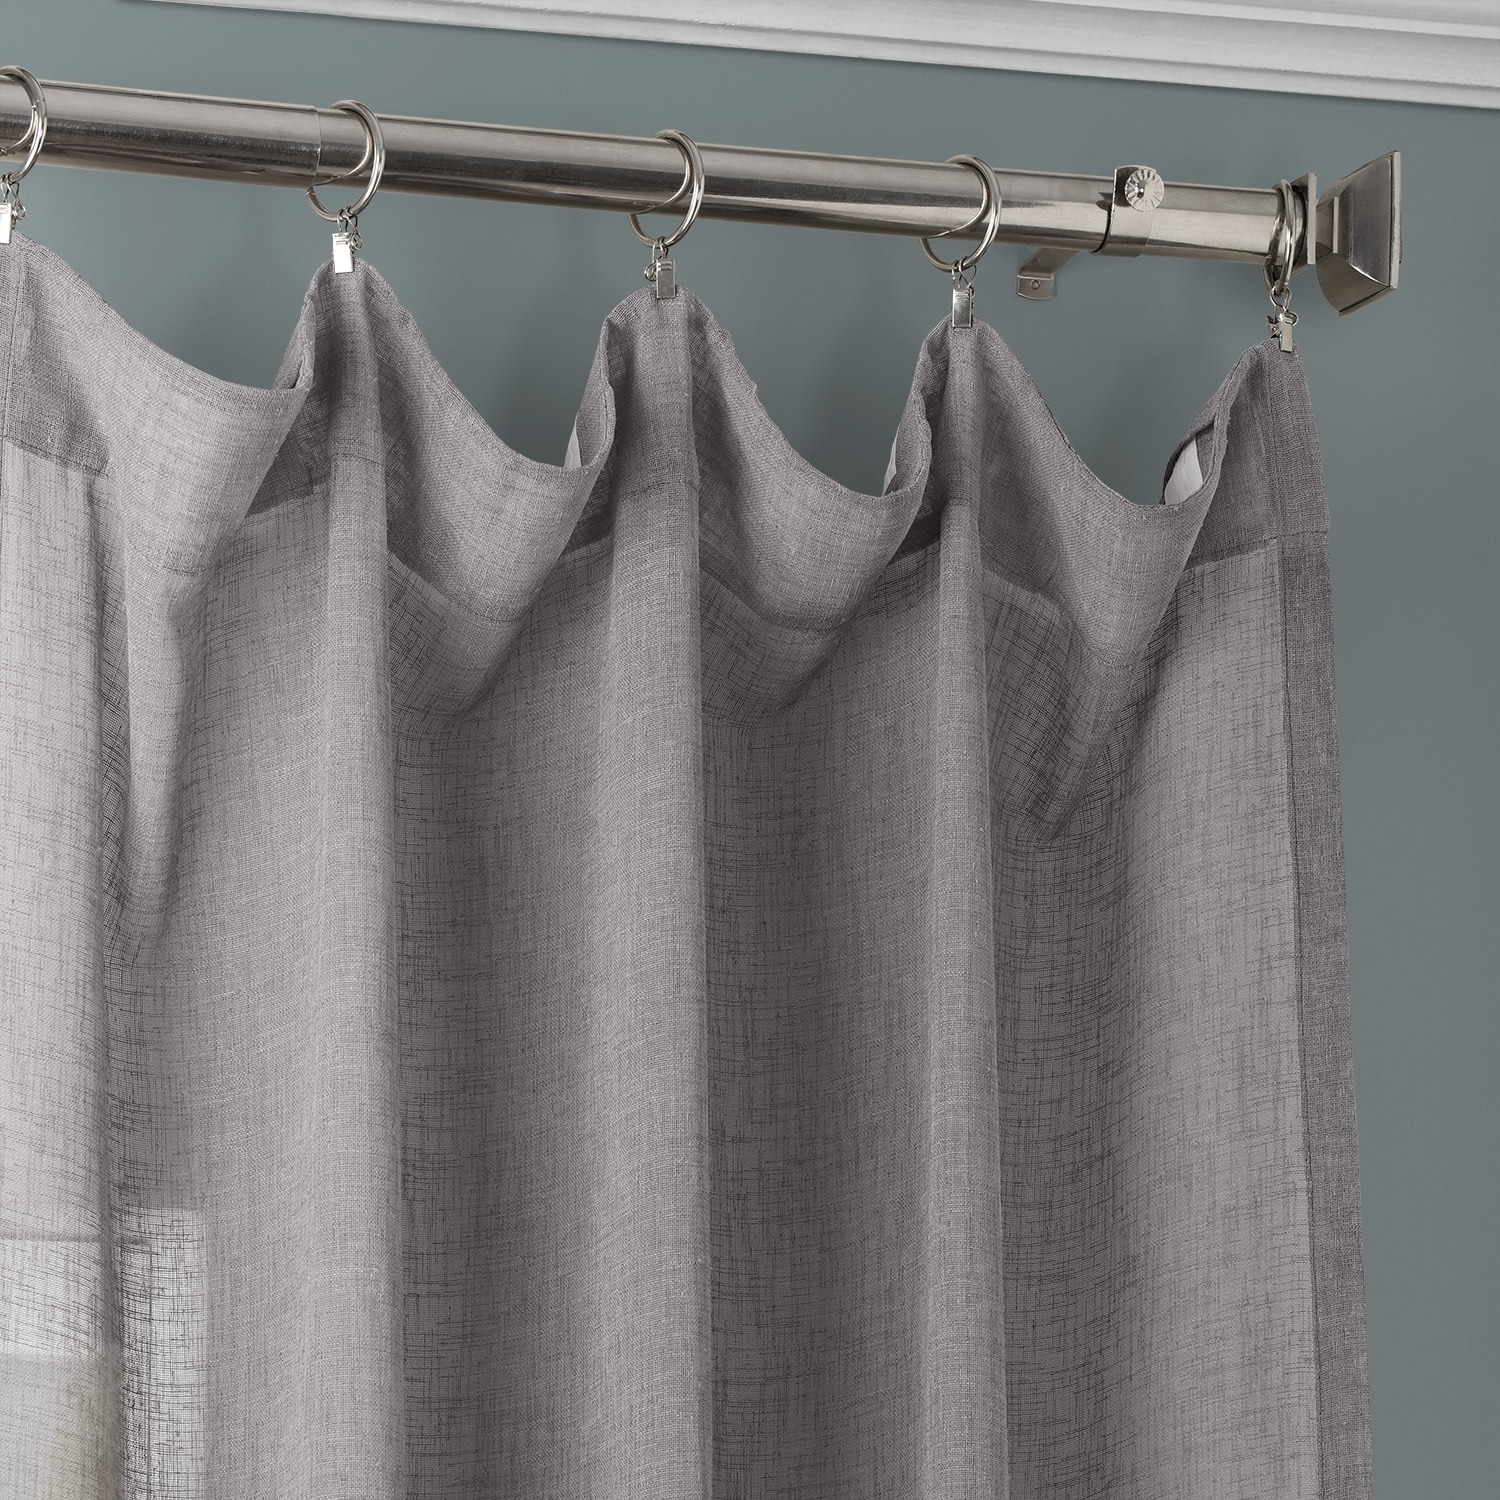 Gravel Grey Solid Faux Linen Sheer Curtain